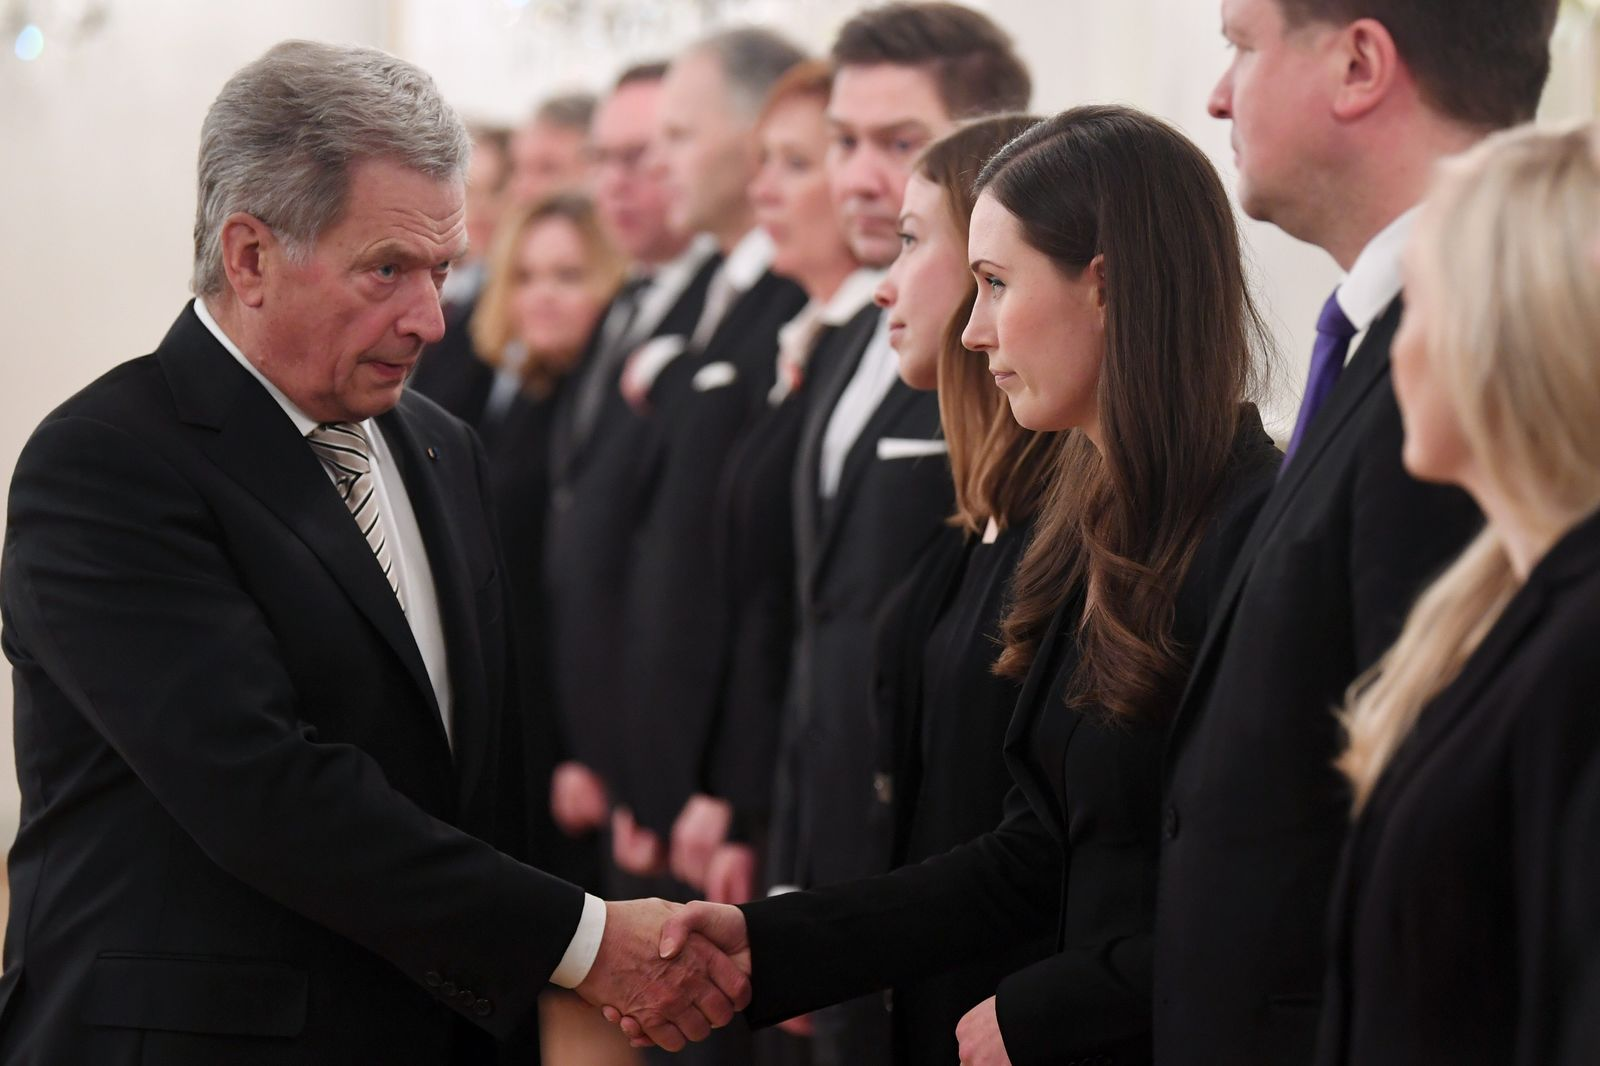 Finland's President Sauli Niinisto, left, and Prime Minister Sanna Marin shake hands to welcome the new government of Finland in Helsinki, Finland on Tuesday Dec. 10, 2019. Finland's parliament chose Sanna Marin as the country's new prime minister Tuesday, making the 34-year-old the world's youngest sitting head of government. (Jussi Nukari/Lehtikuva via AP)